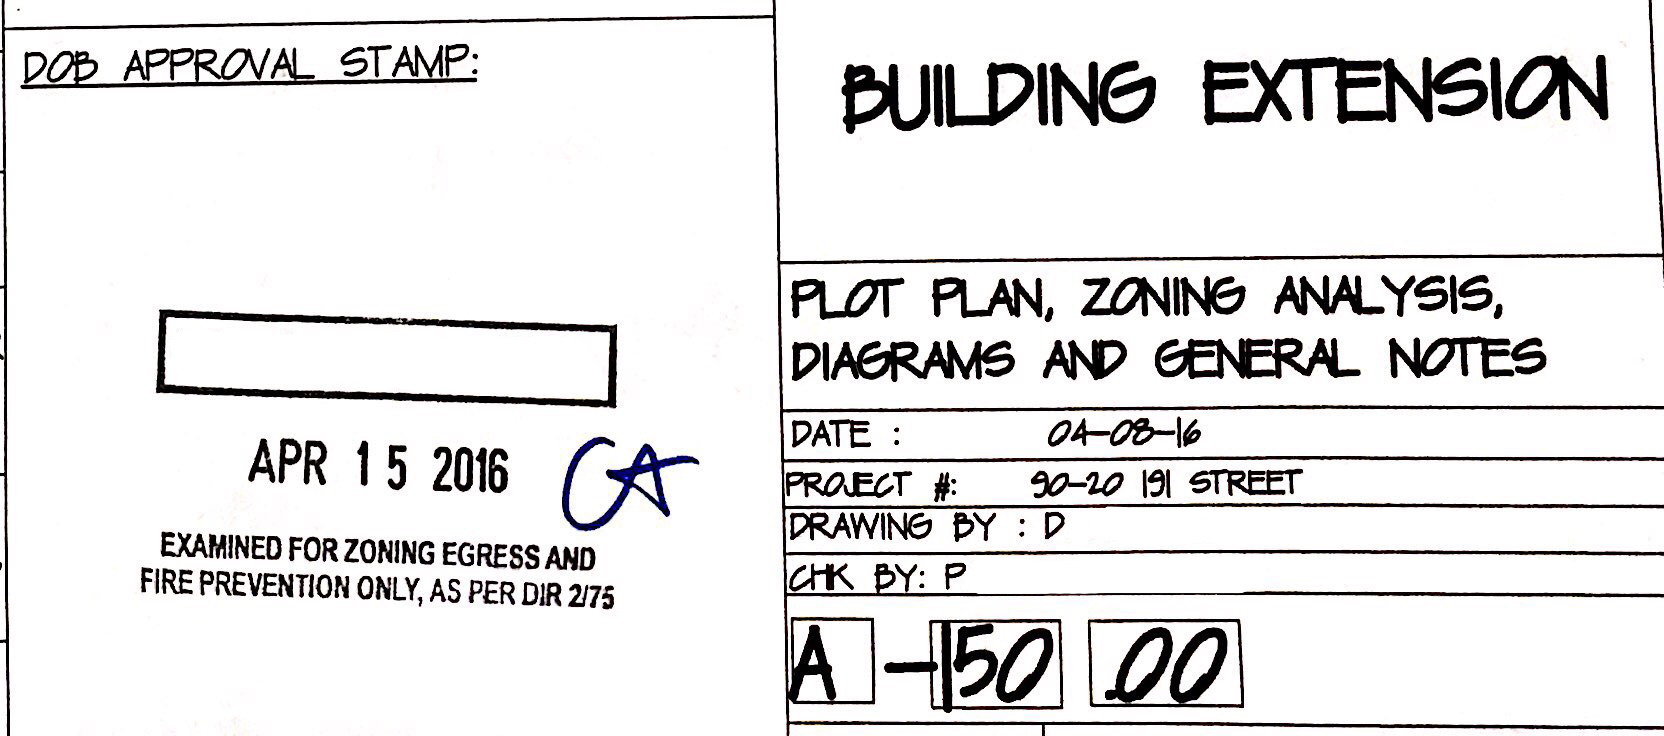 4-15-2016 Architectural Approval.JPG